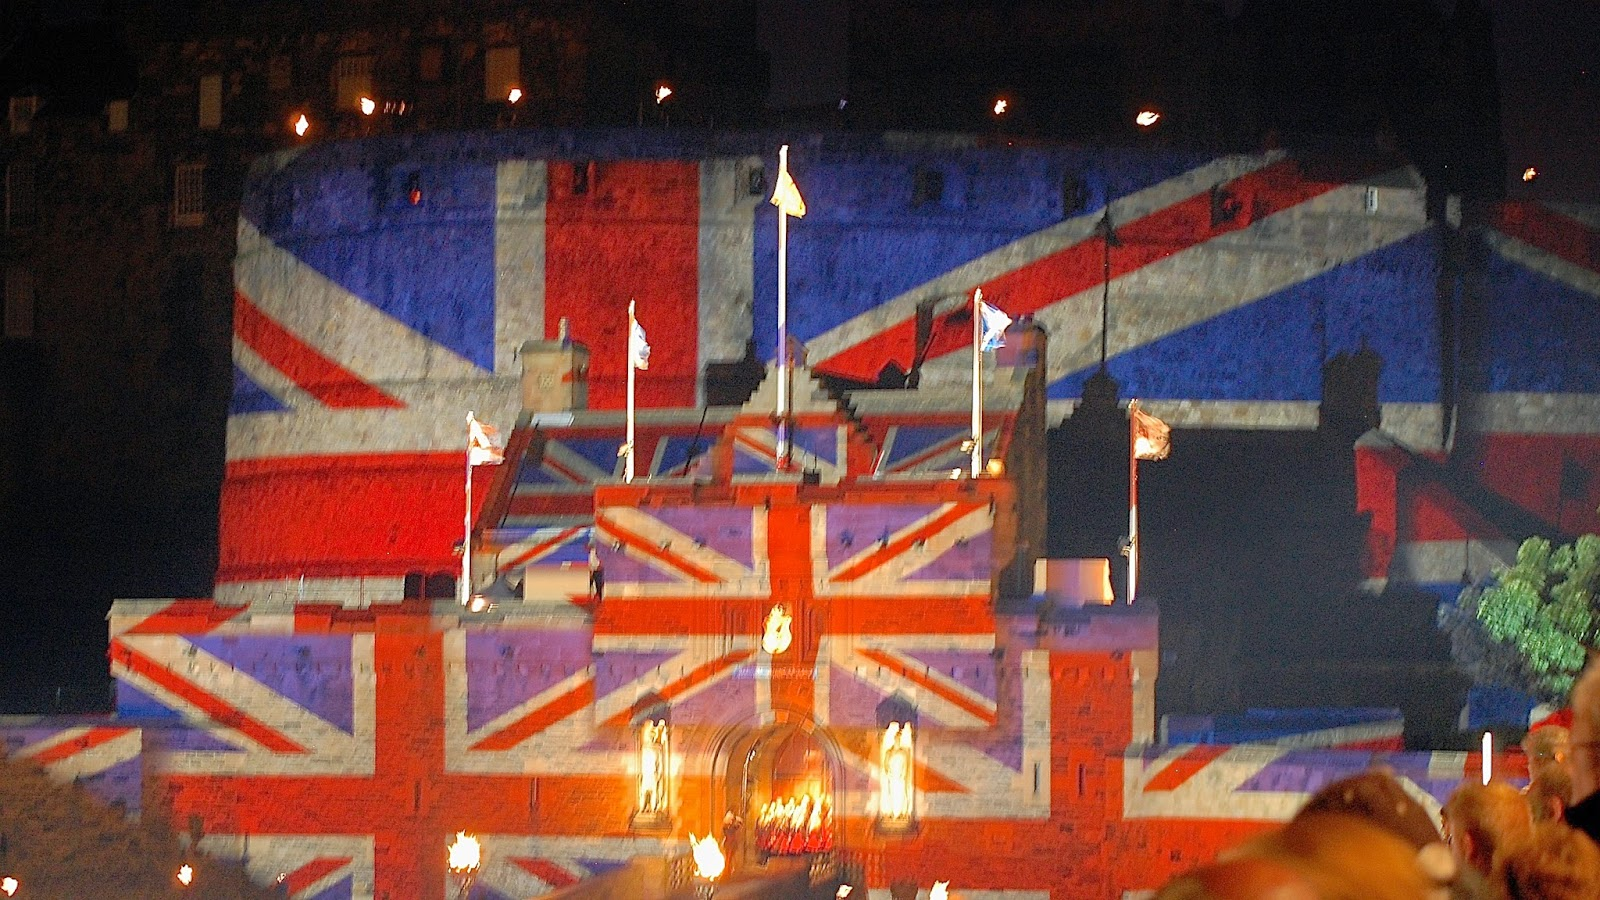 Union Jack flags on Edinburgh Castle during Royal Edinburgh Military Tattoo